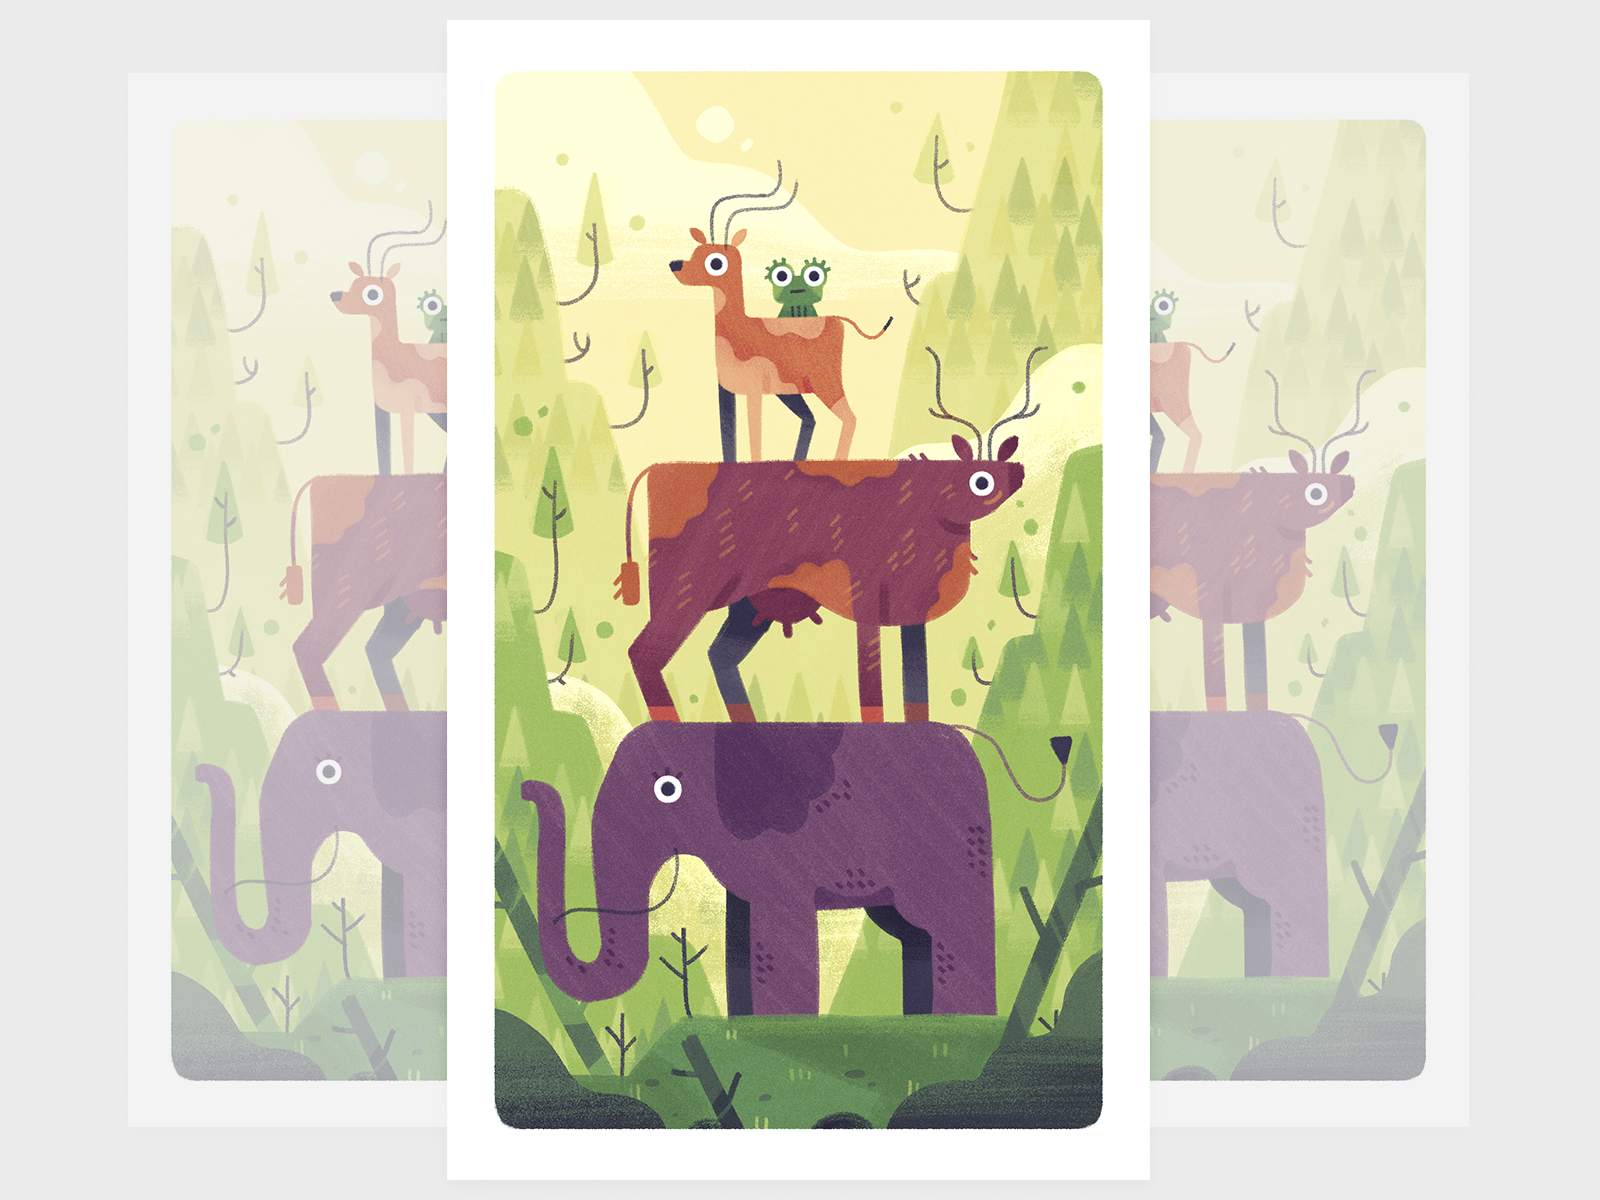 Animal tower mountains animal elephant cow frog deer fireart studio character design 2d illustration